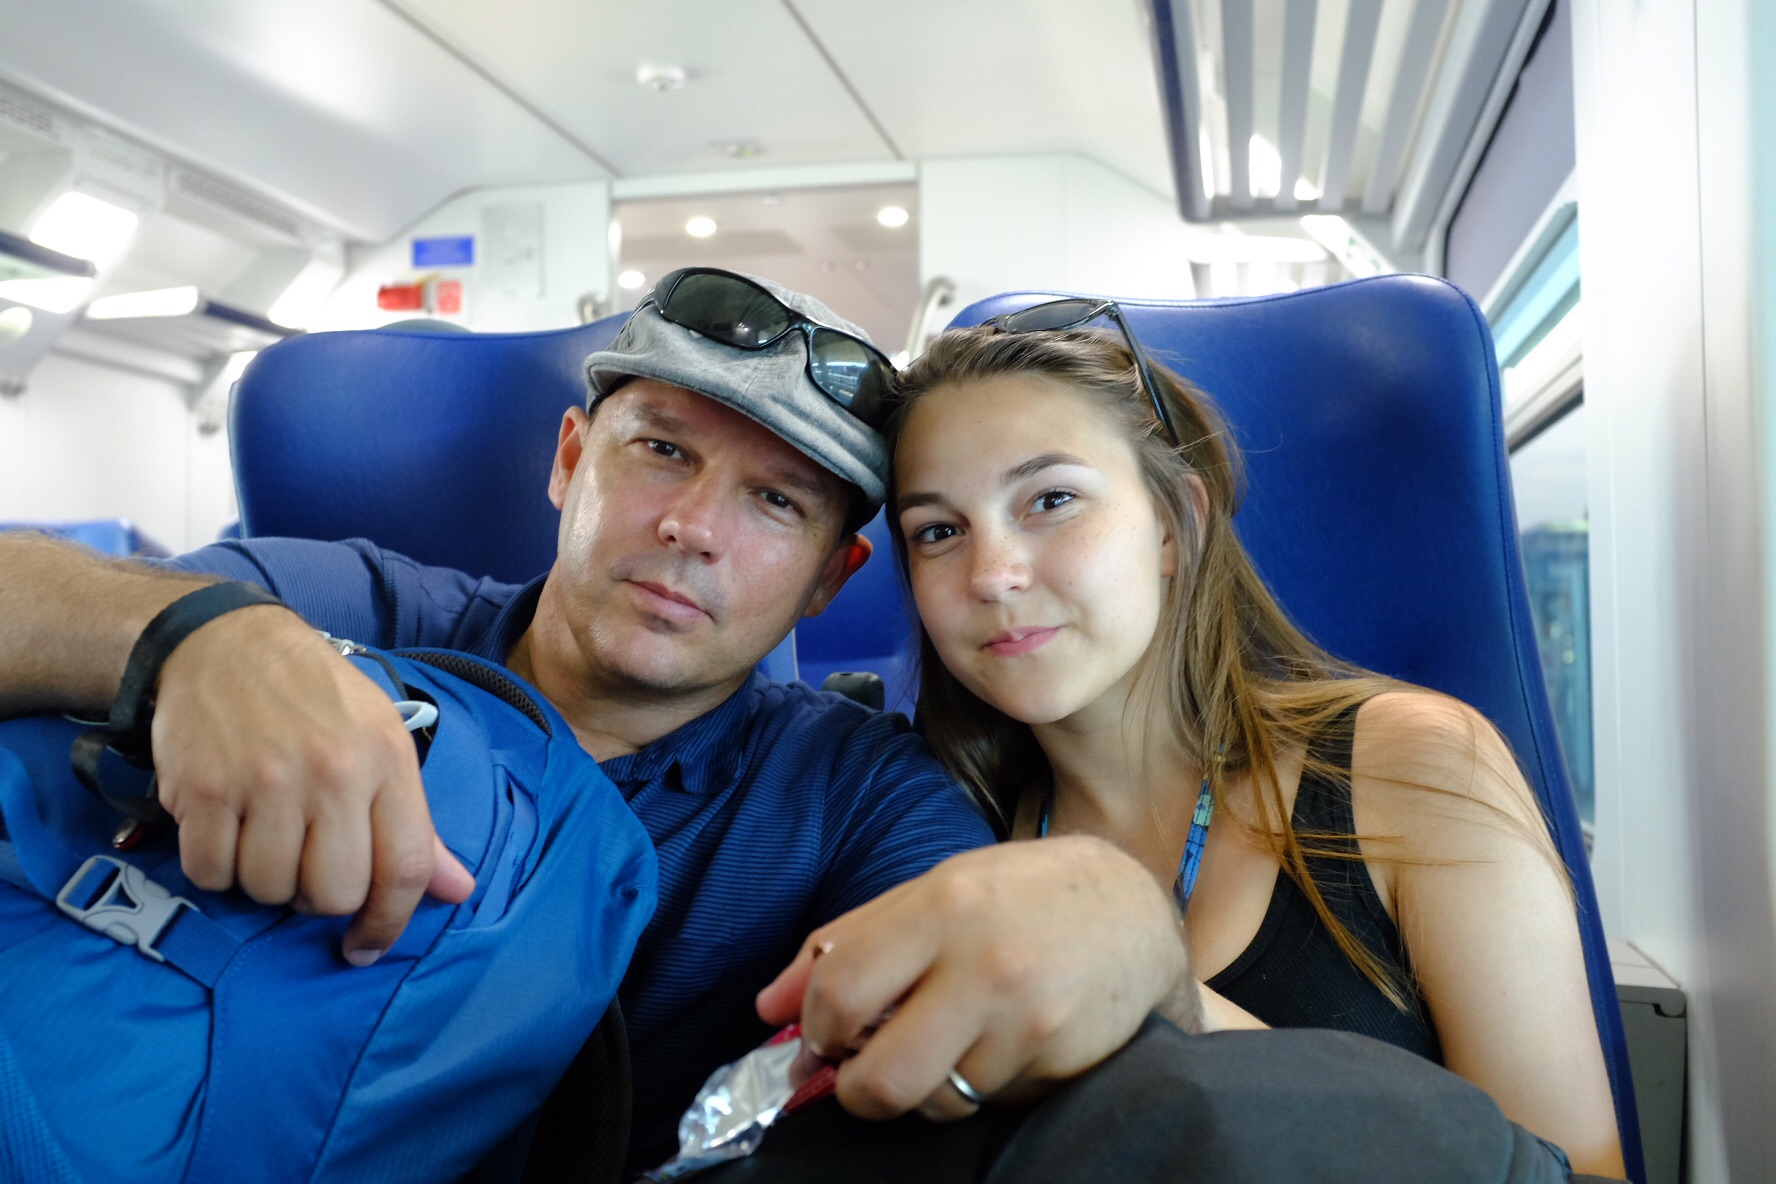 Syd and me riding the rails